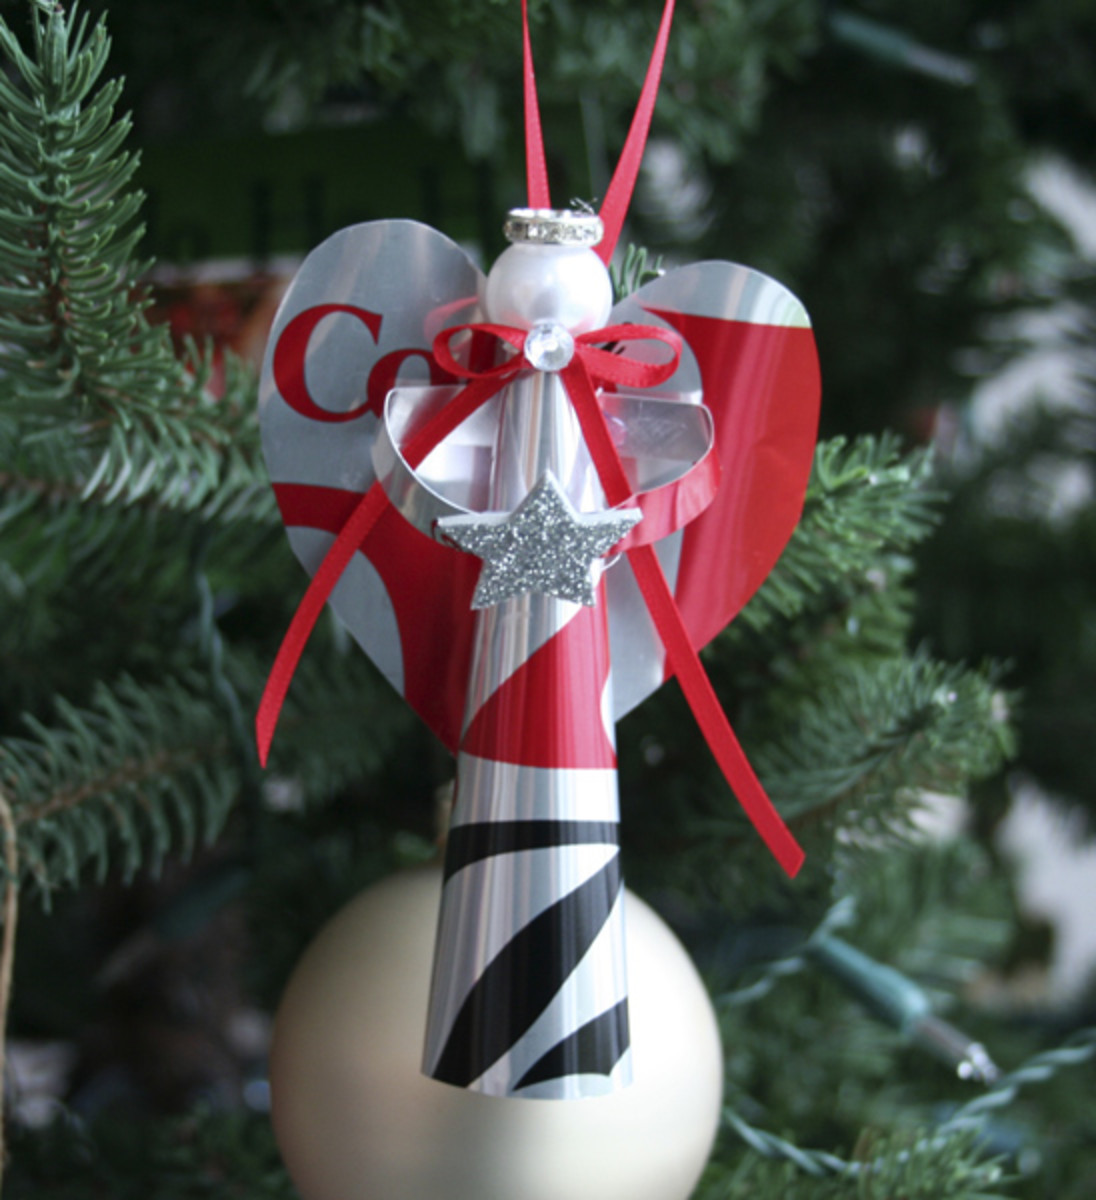 How to Make Recycled Handmade Angel Christmas Ornaments